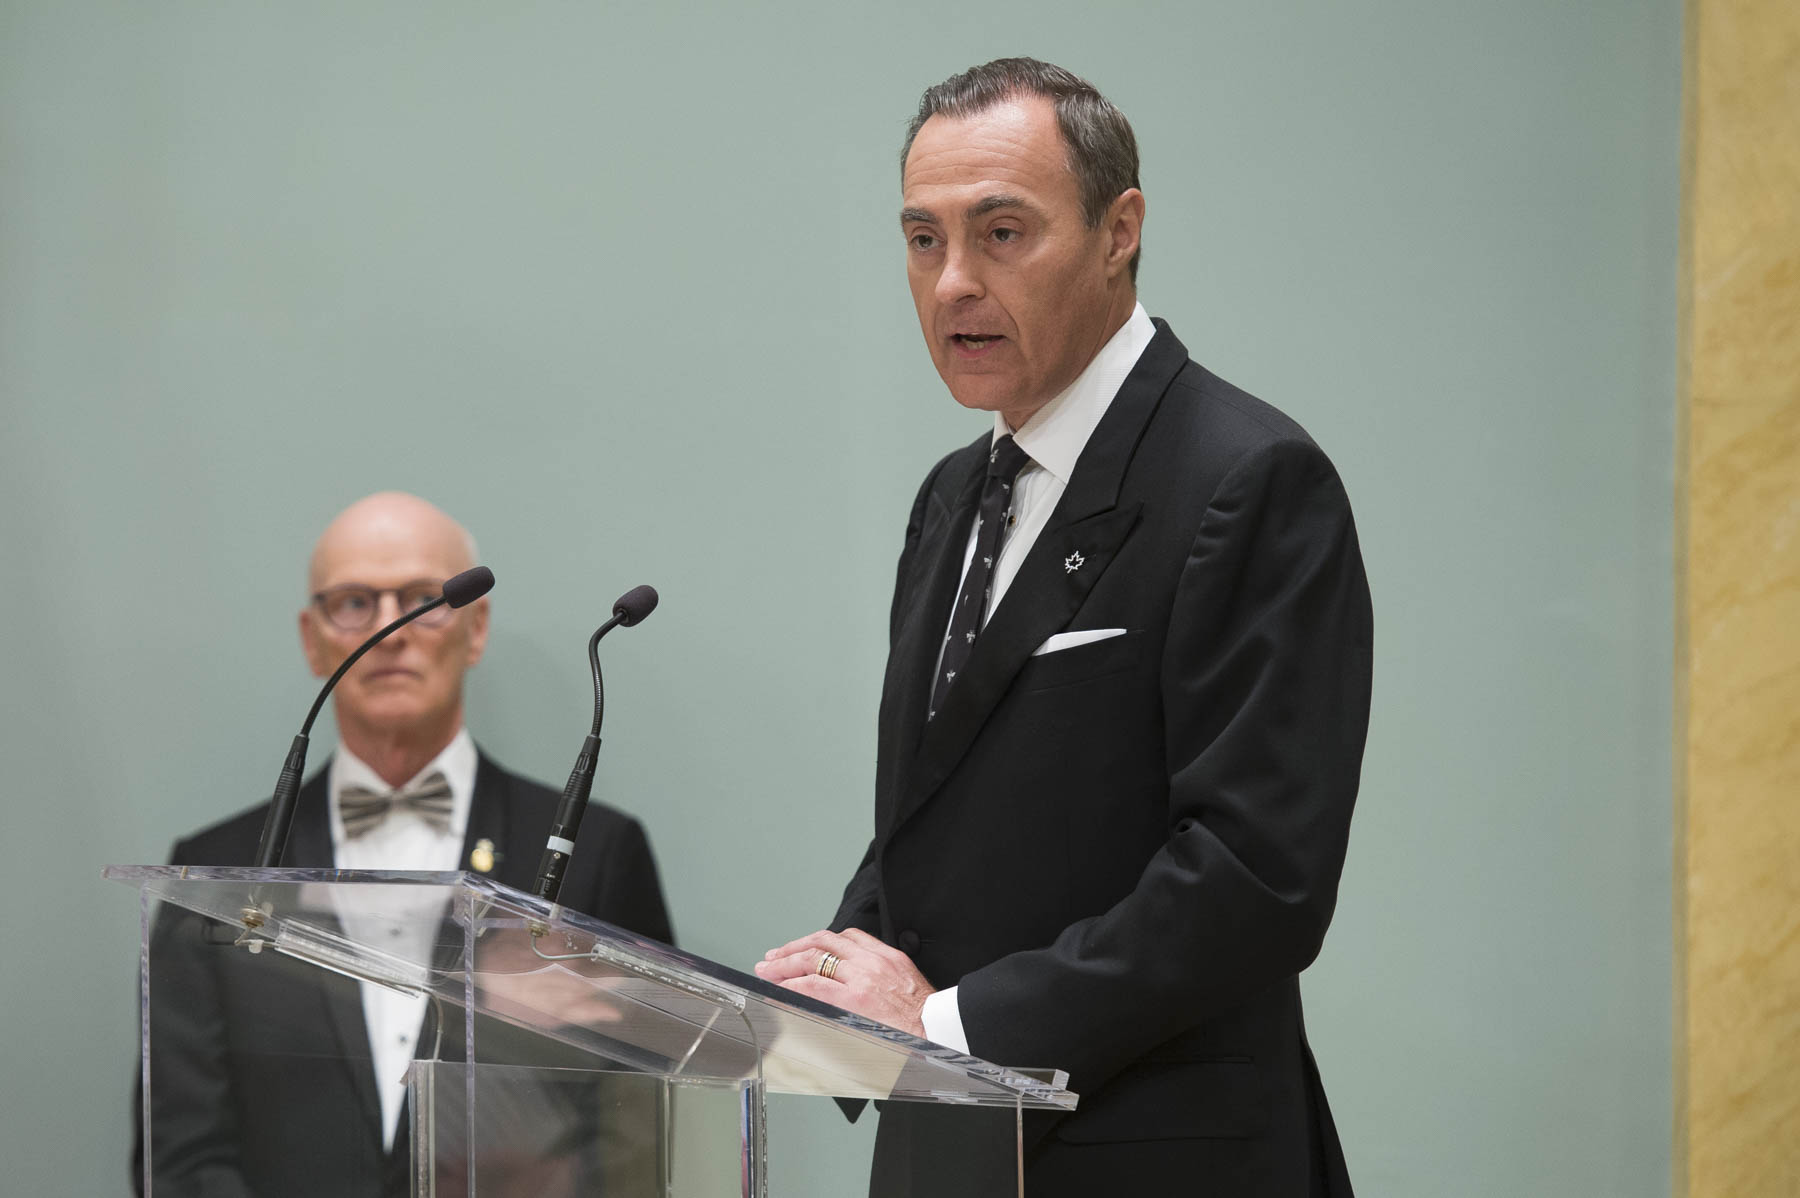 Mr. Jean-Christophe Bédos, President and Chief Executive Officer, delivered remarks On behalf of Birks Groupe inc., the presenting partner of the awards.